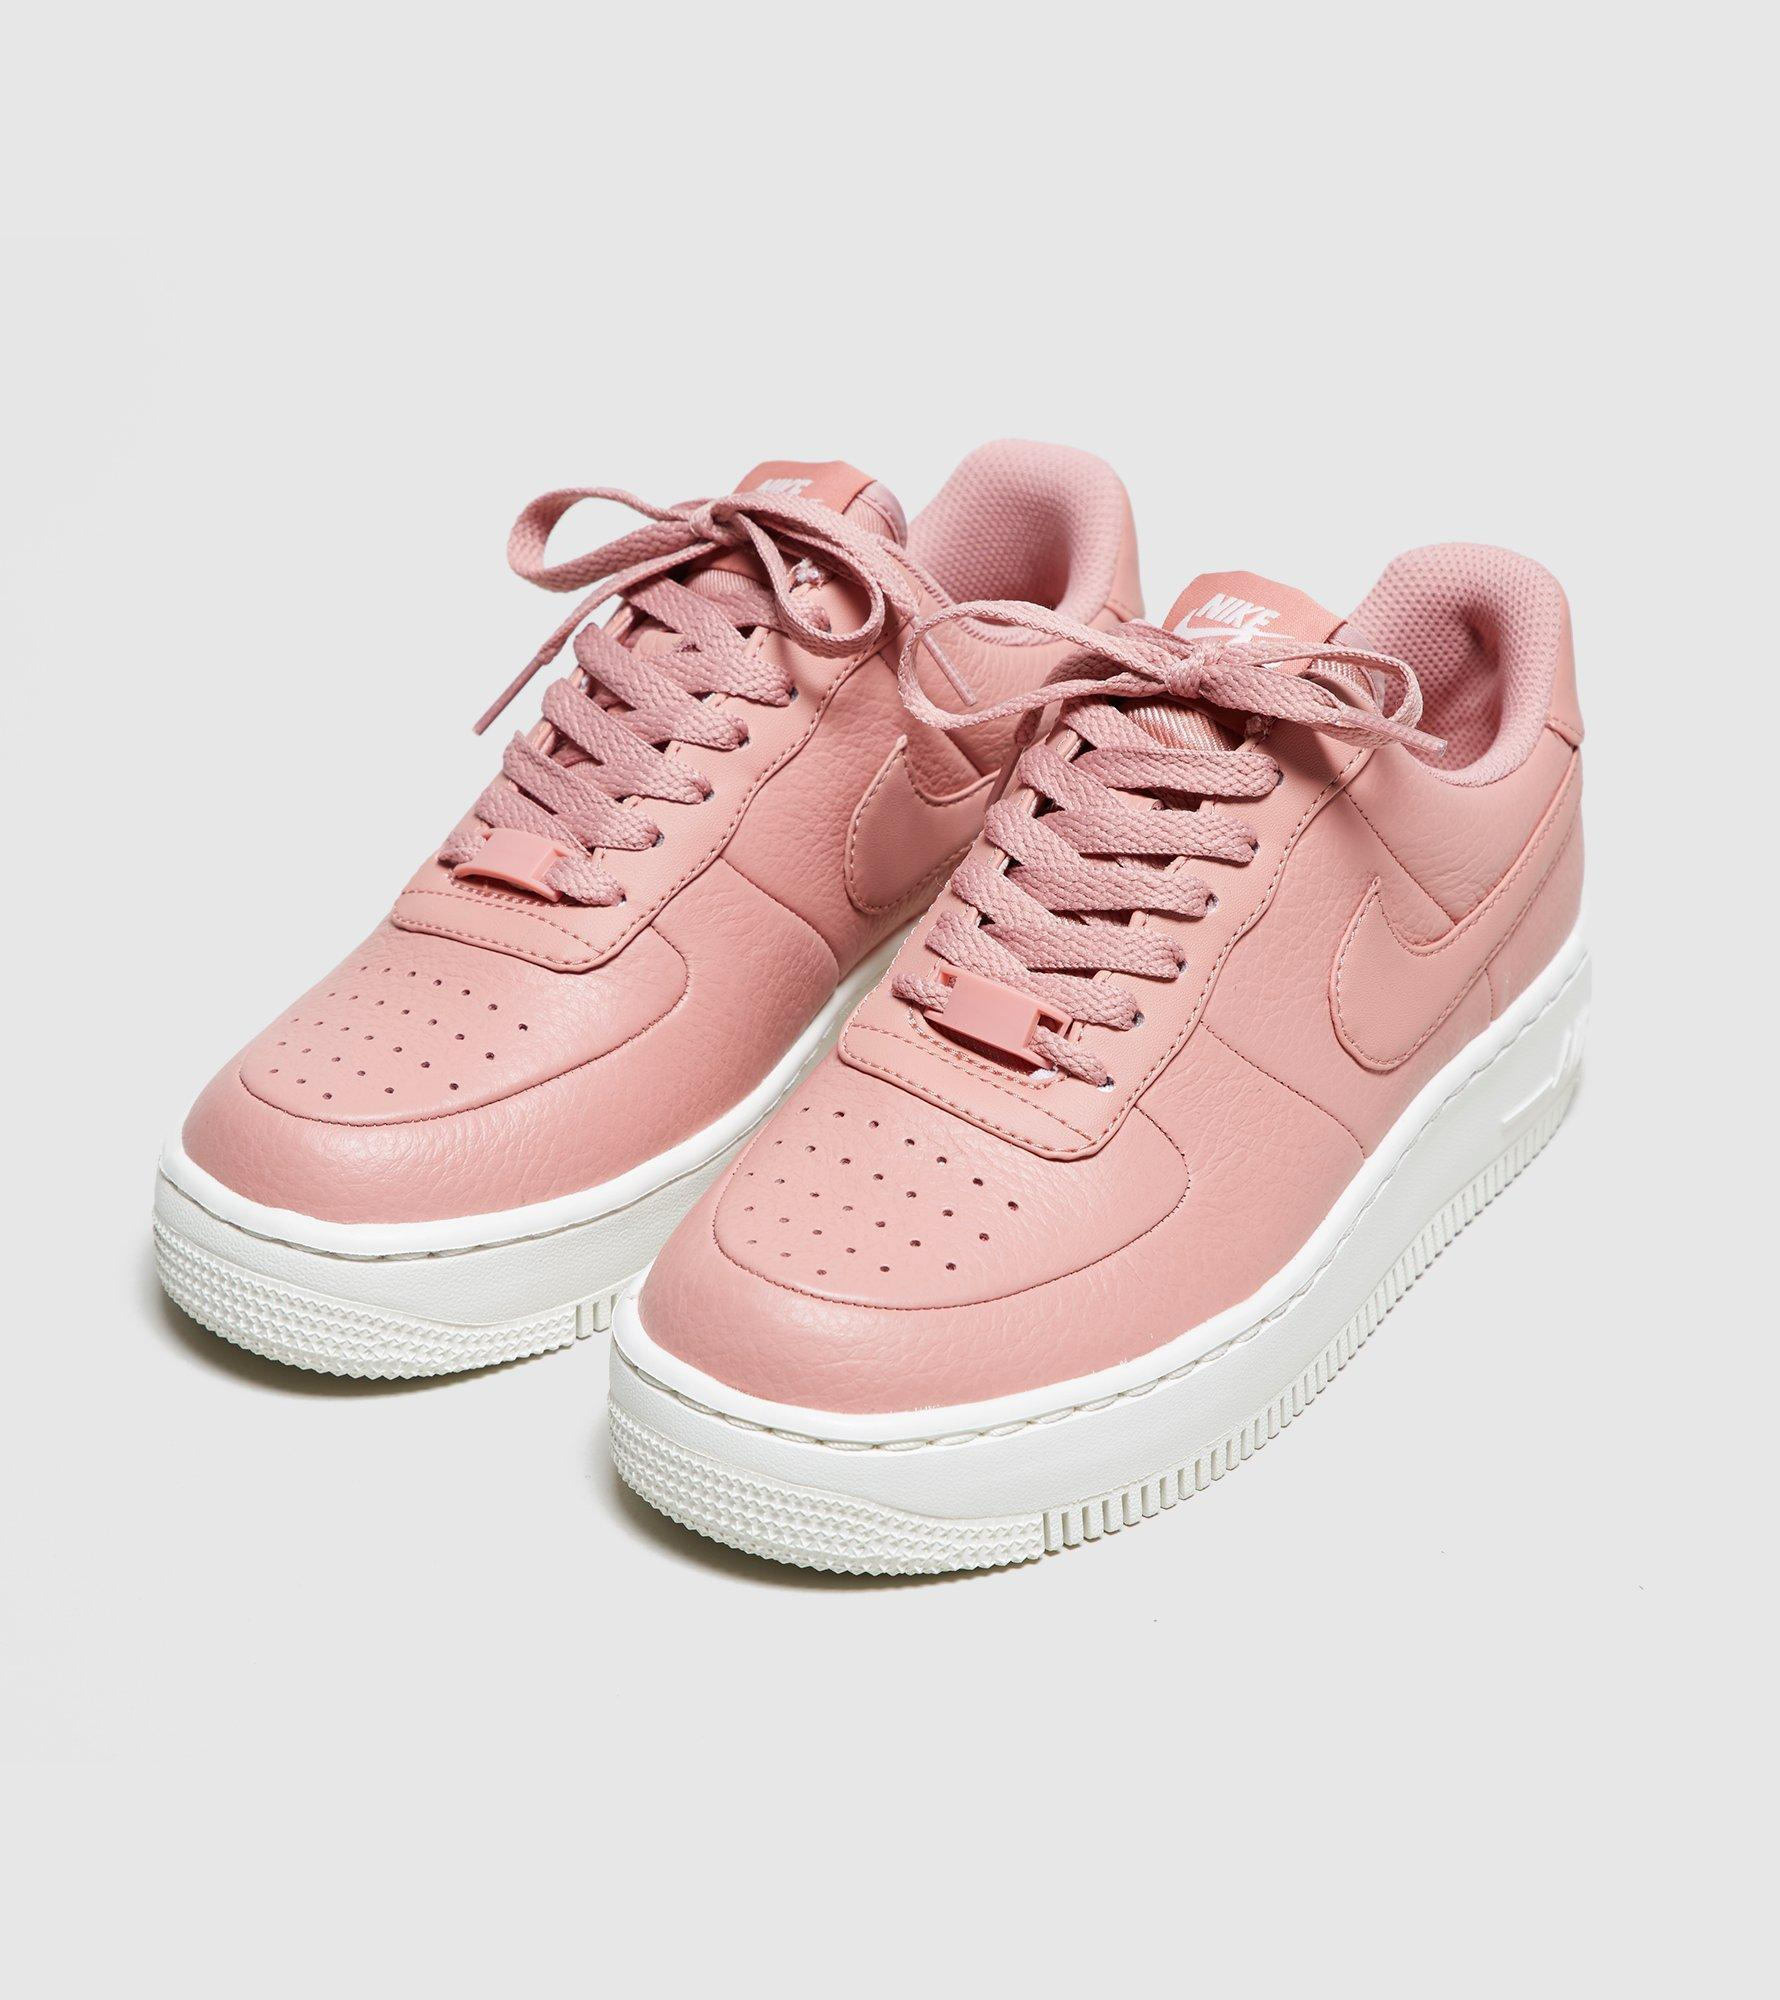 Nike Air Force 1 Upstep Women s in Pink - Lyst ef742040d